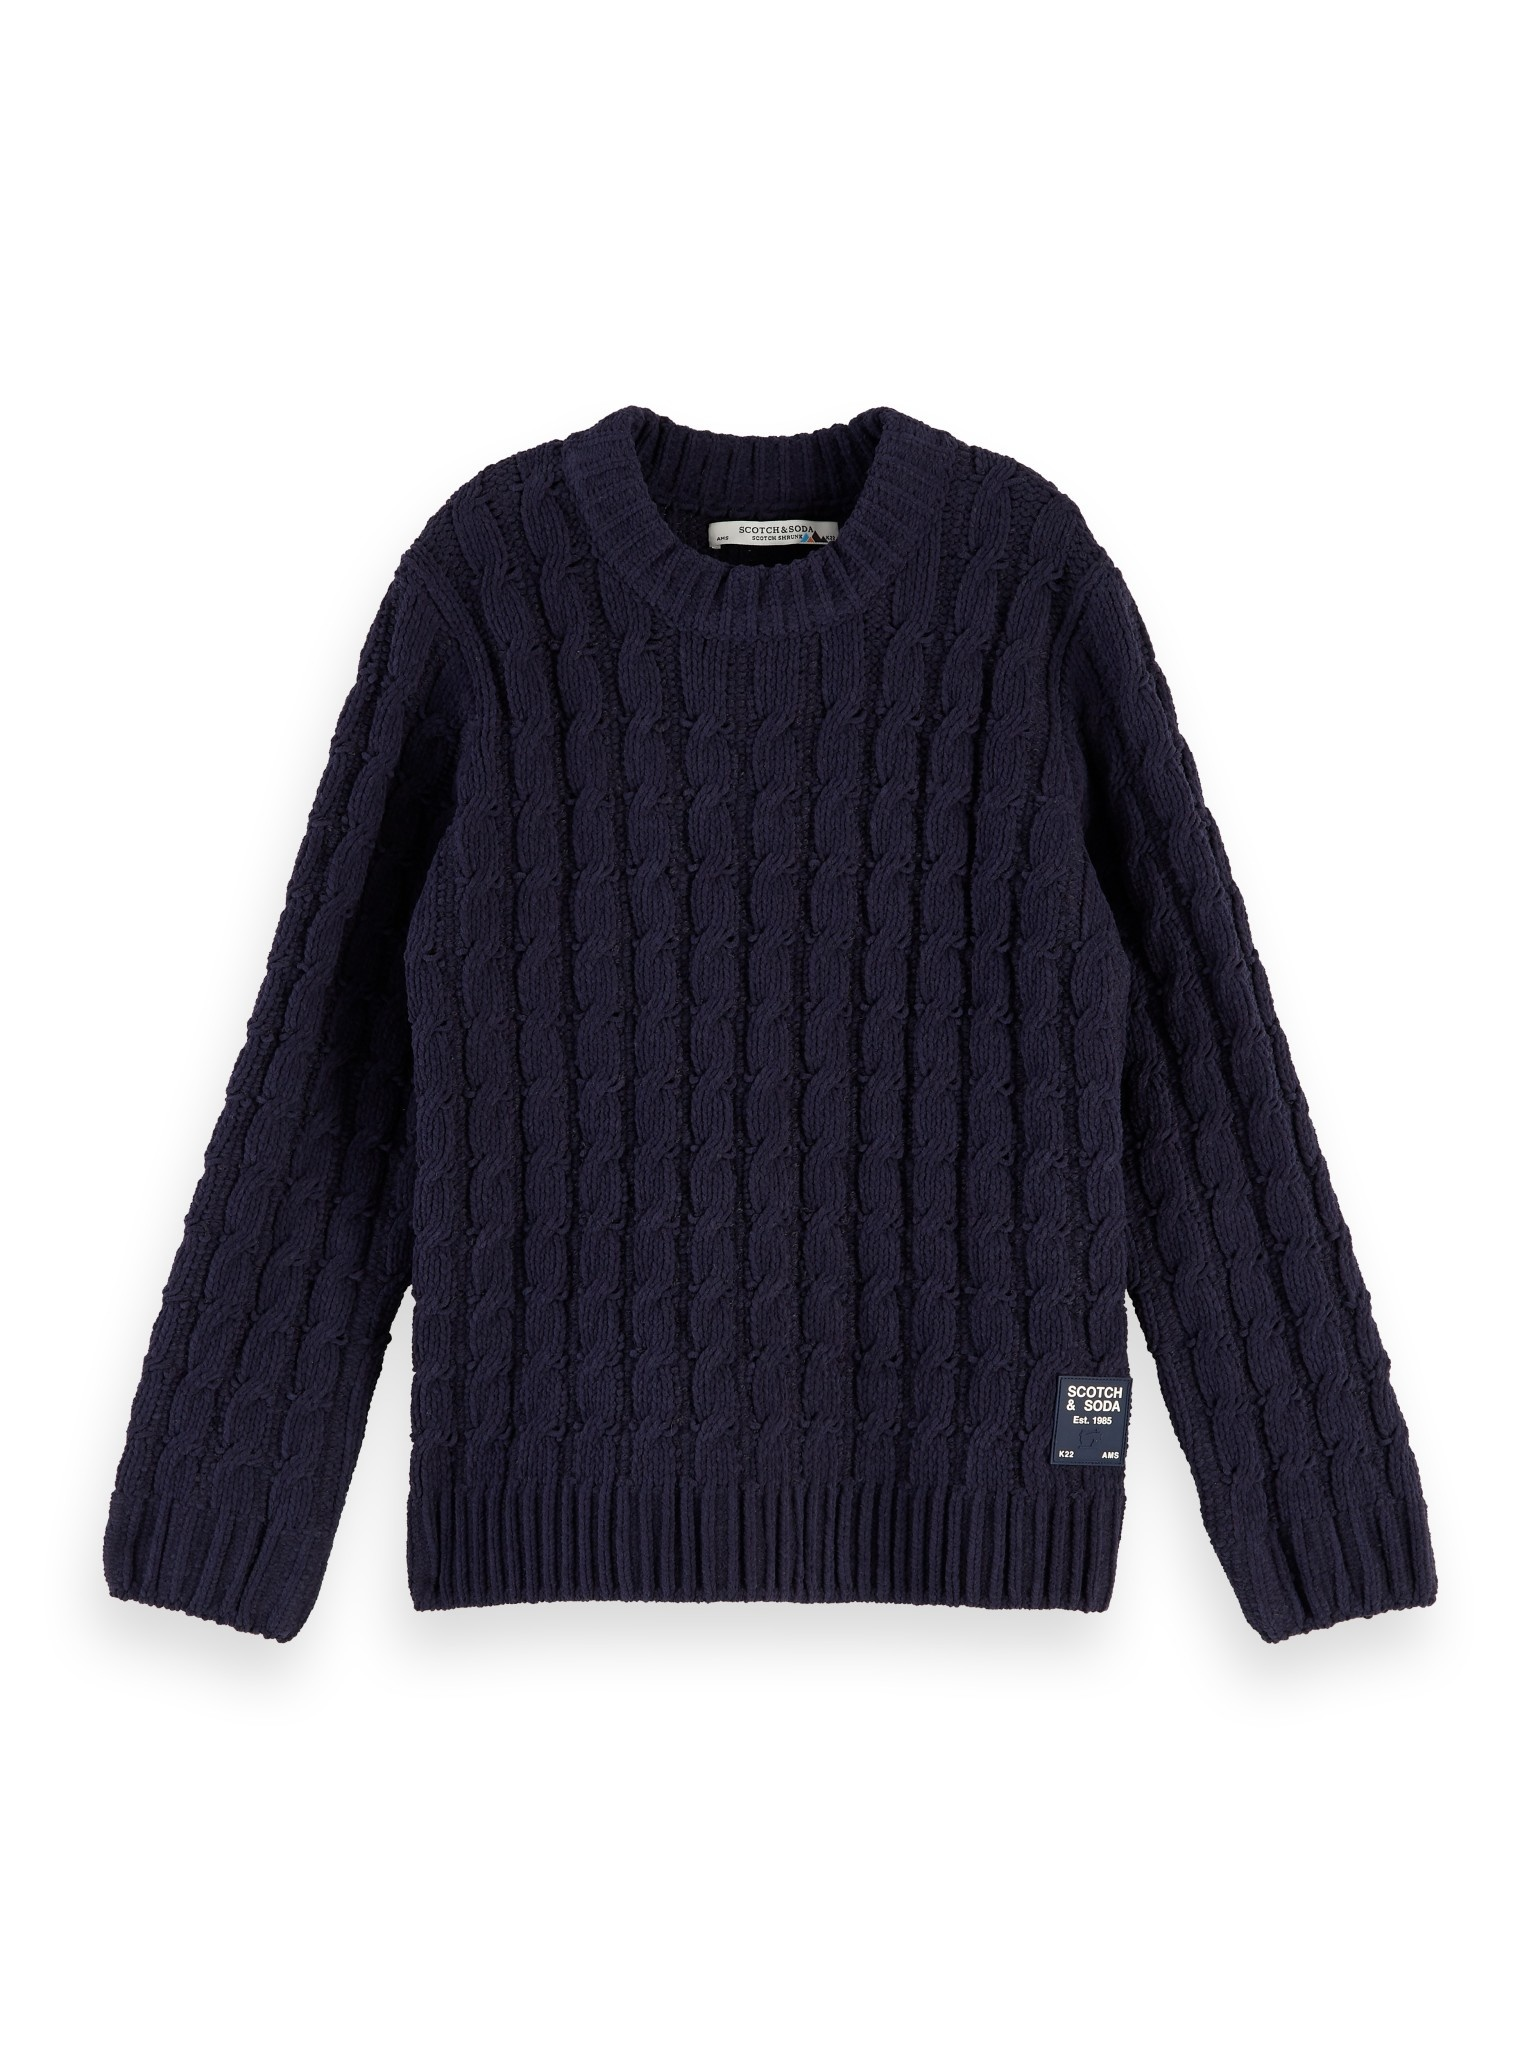 Scotch Shrunk Scotch - Crewneck pull with cable structure 0002, 157806